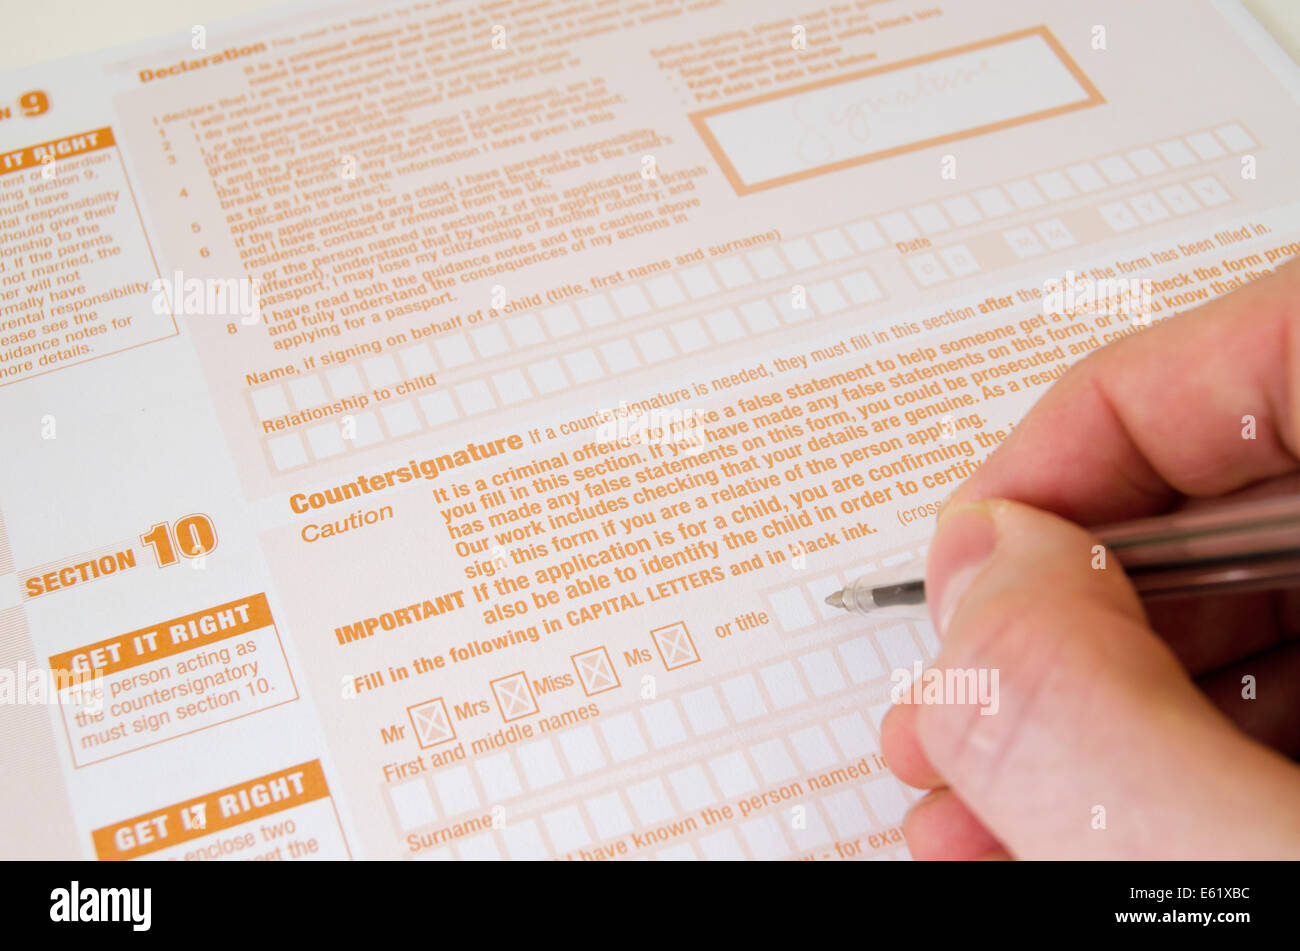 United kingdom passport application form stock photos united completing a united kingdom passport application form stock image falaconquin